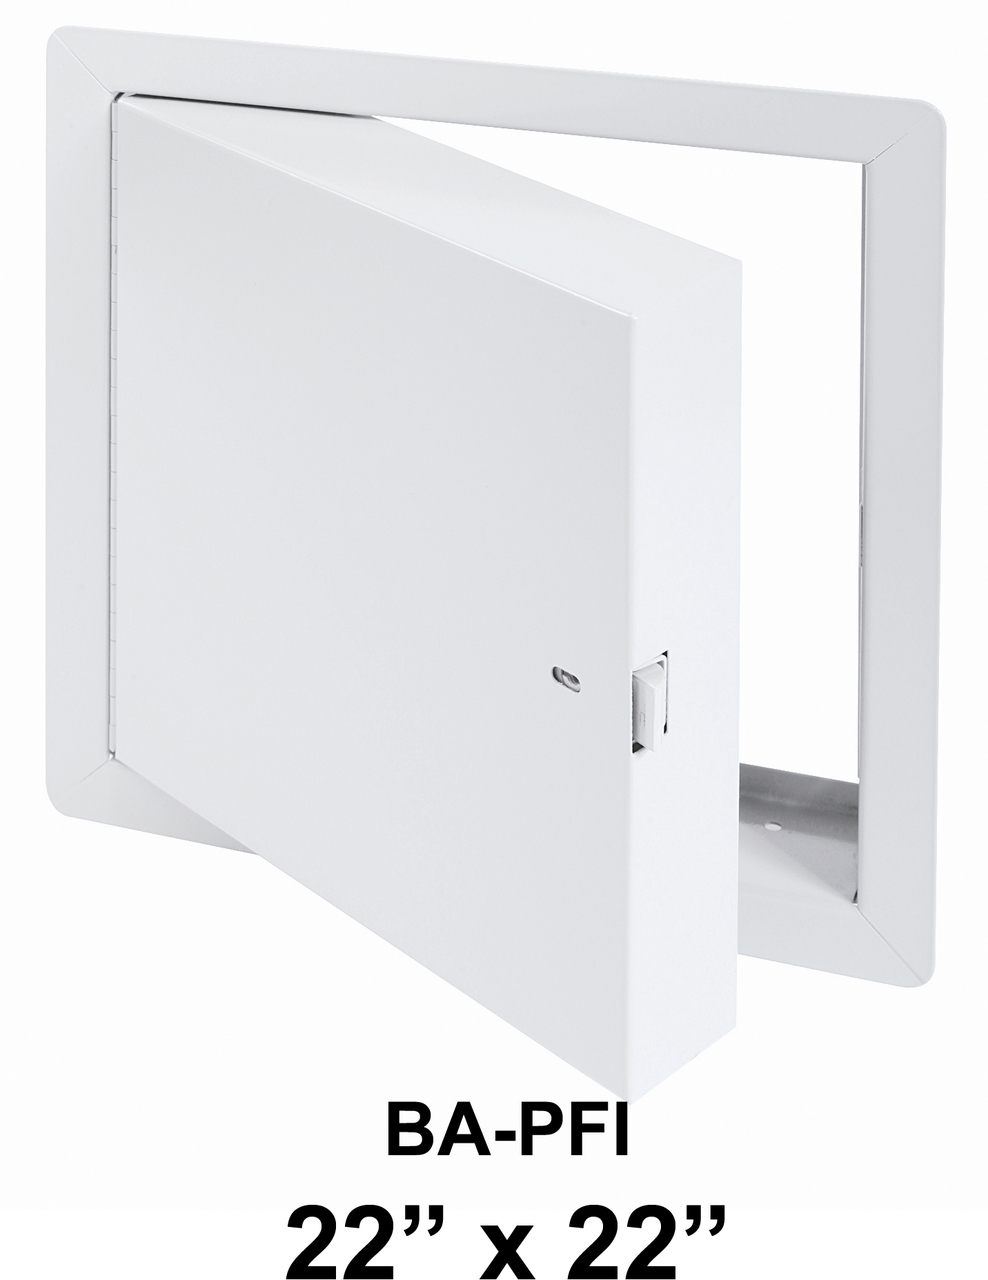 Rated Access Doors BA-PFI Fire Rated Insulated with Flange 22 x 22 – BEST